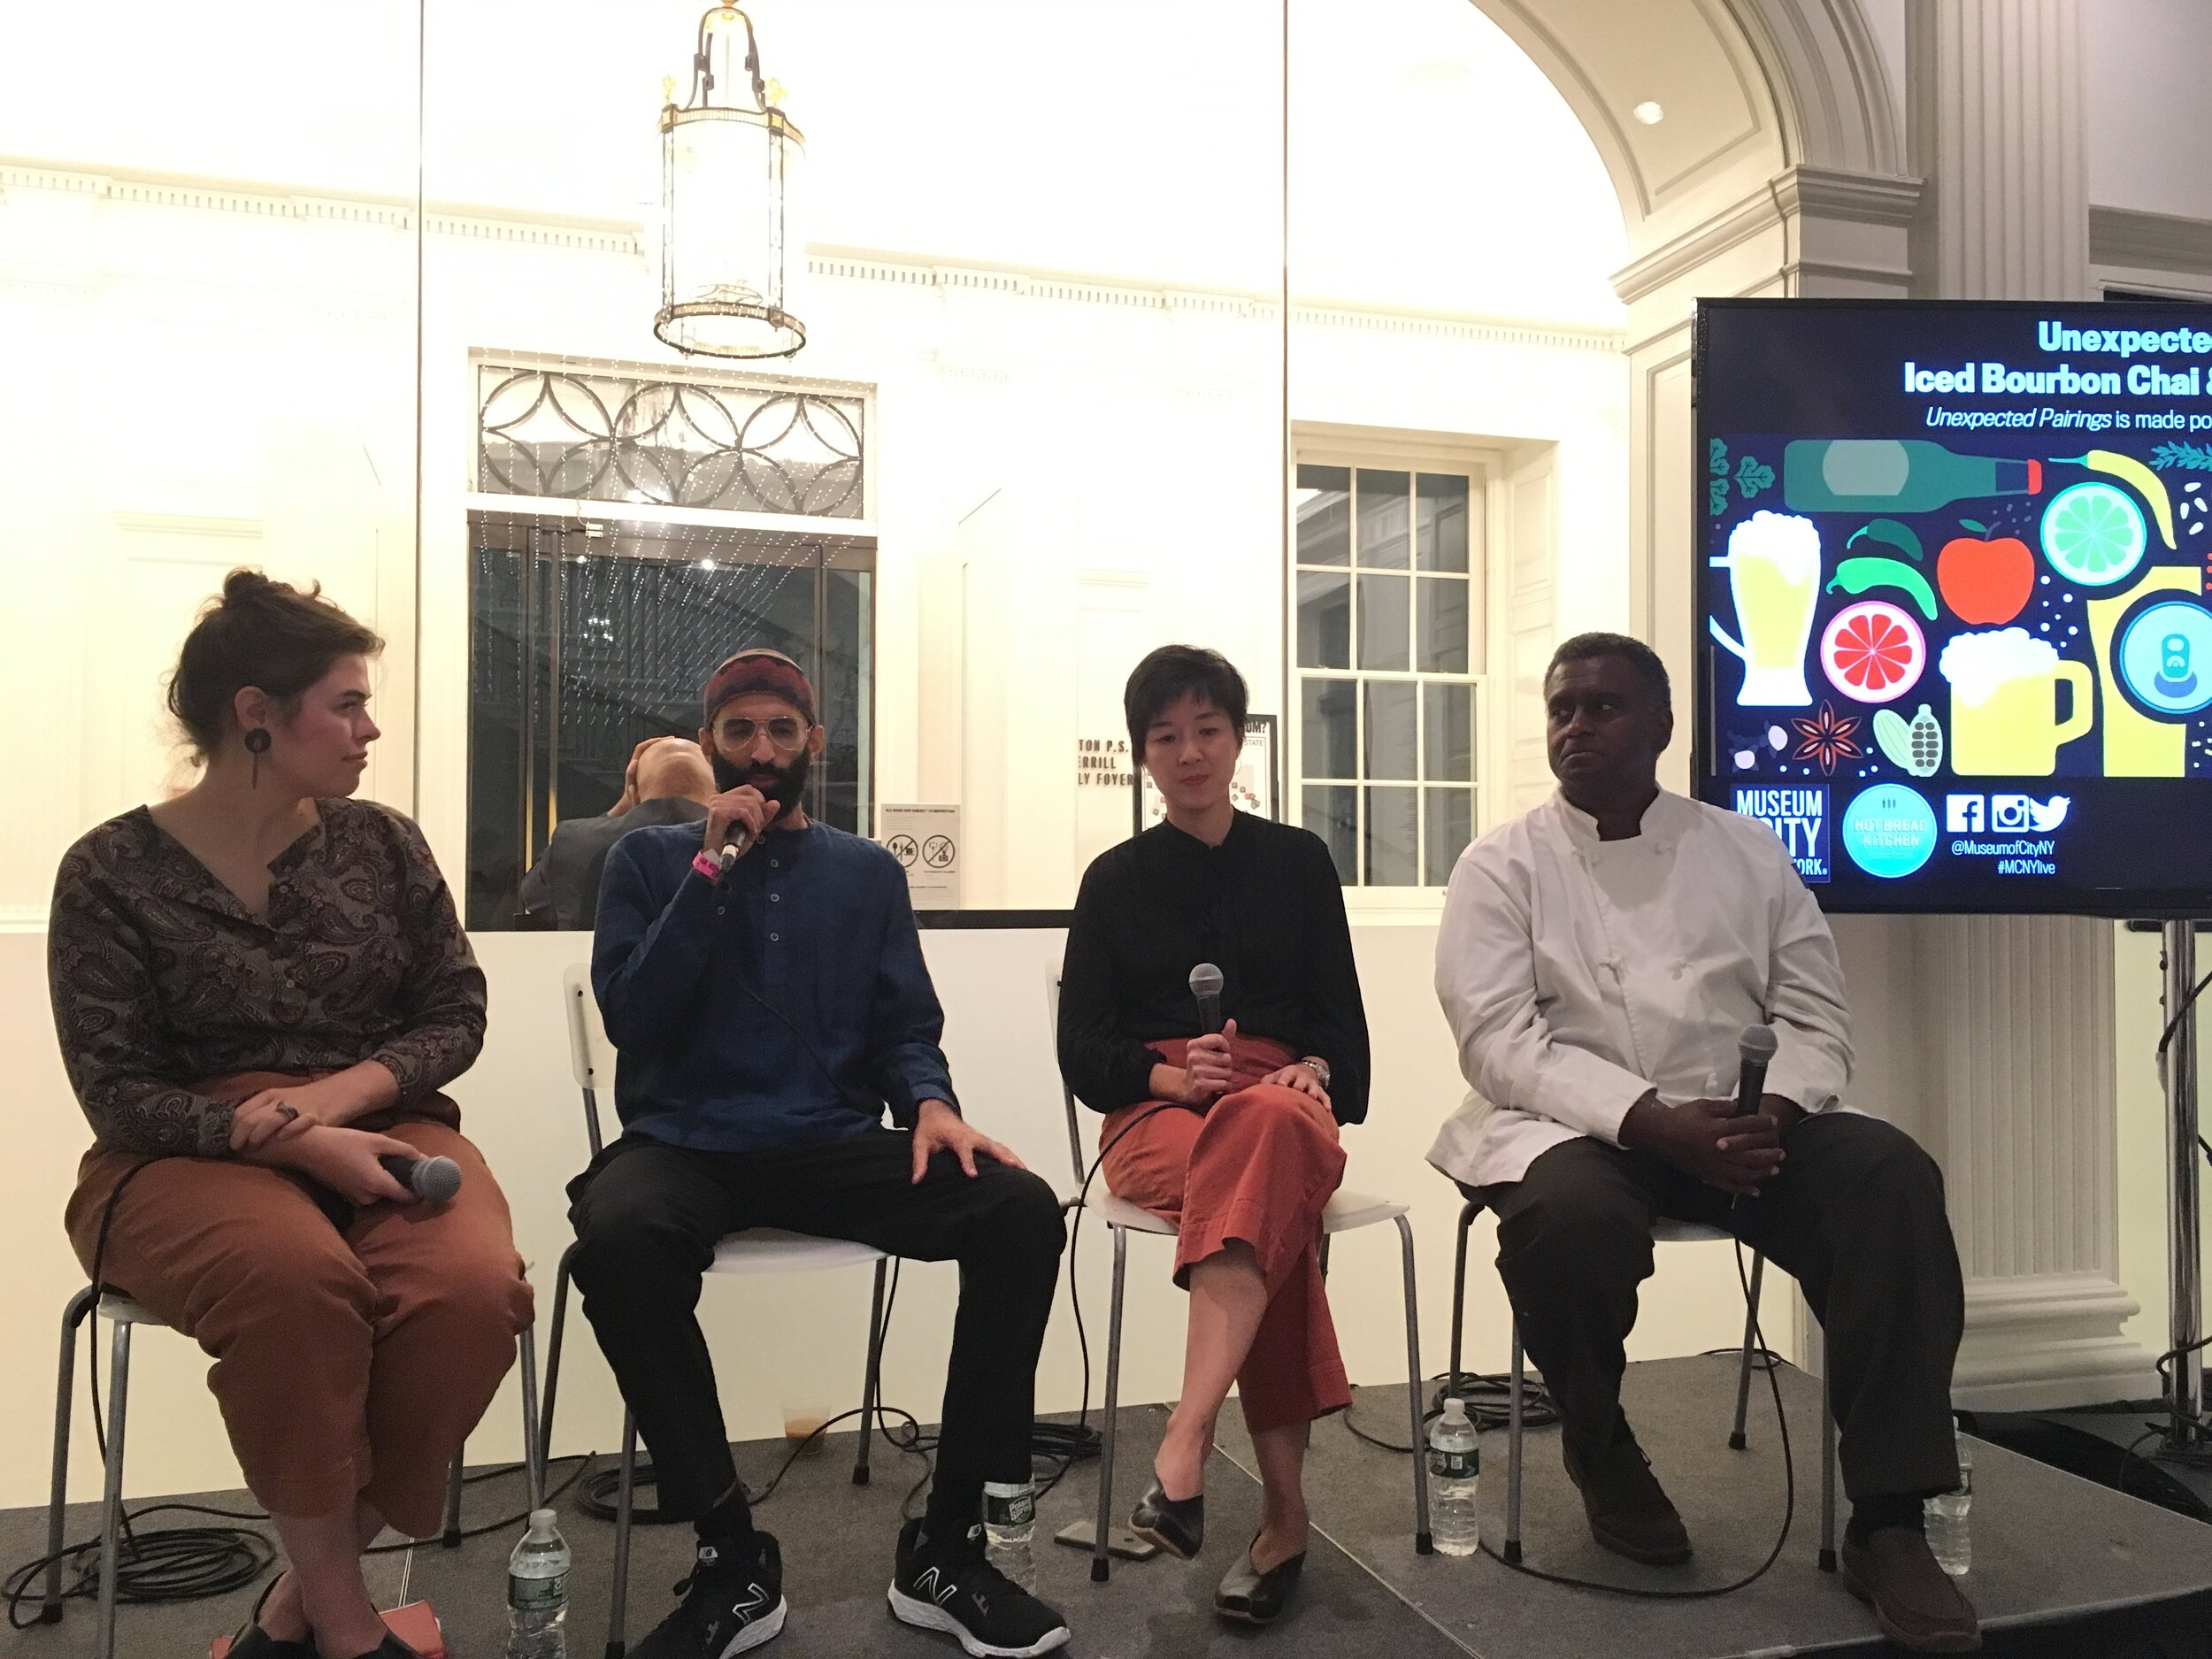 Panel discussion with Roots Chai and Harlem Pie man